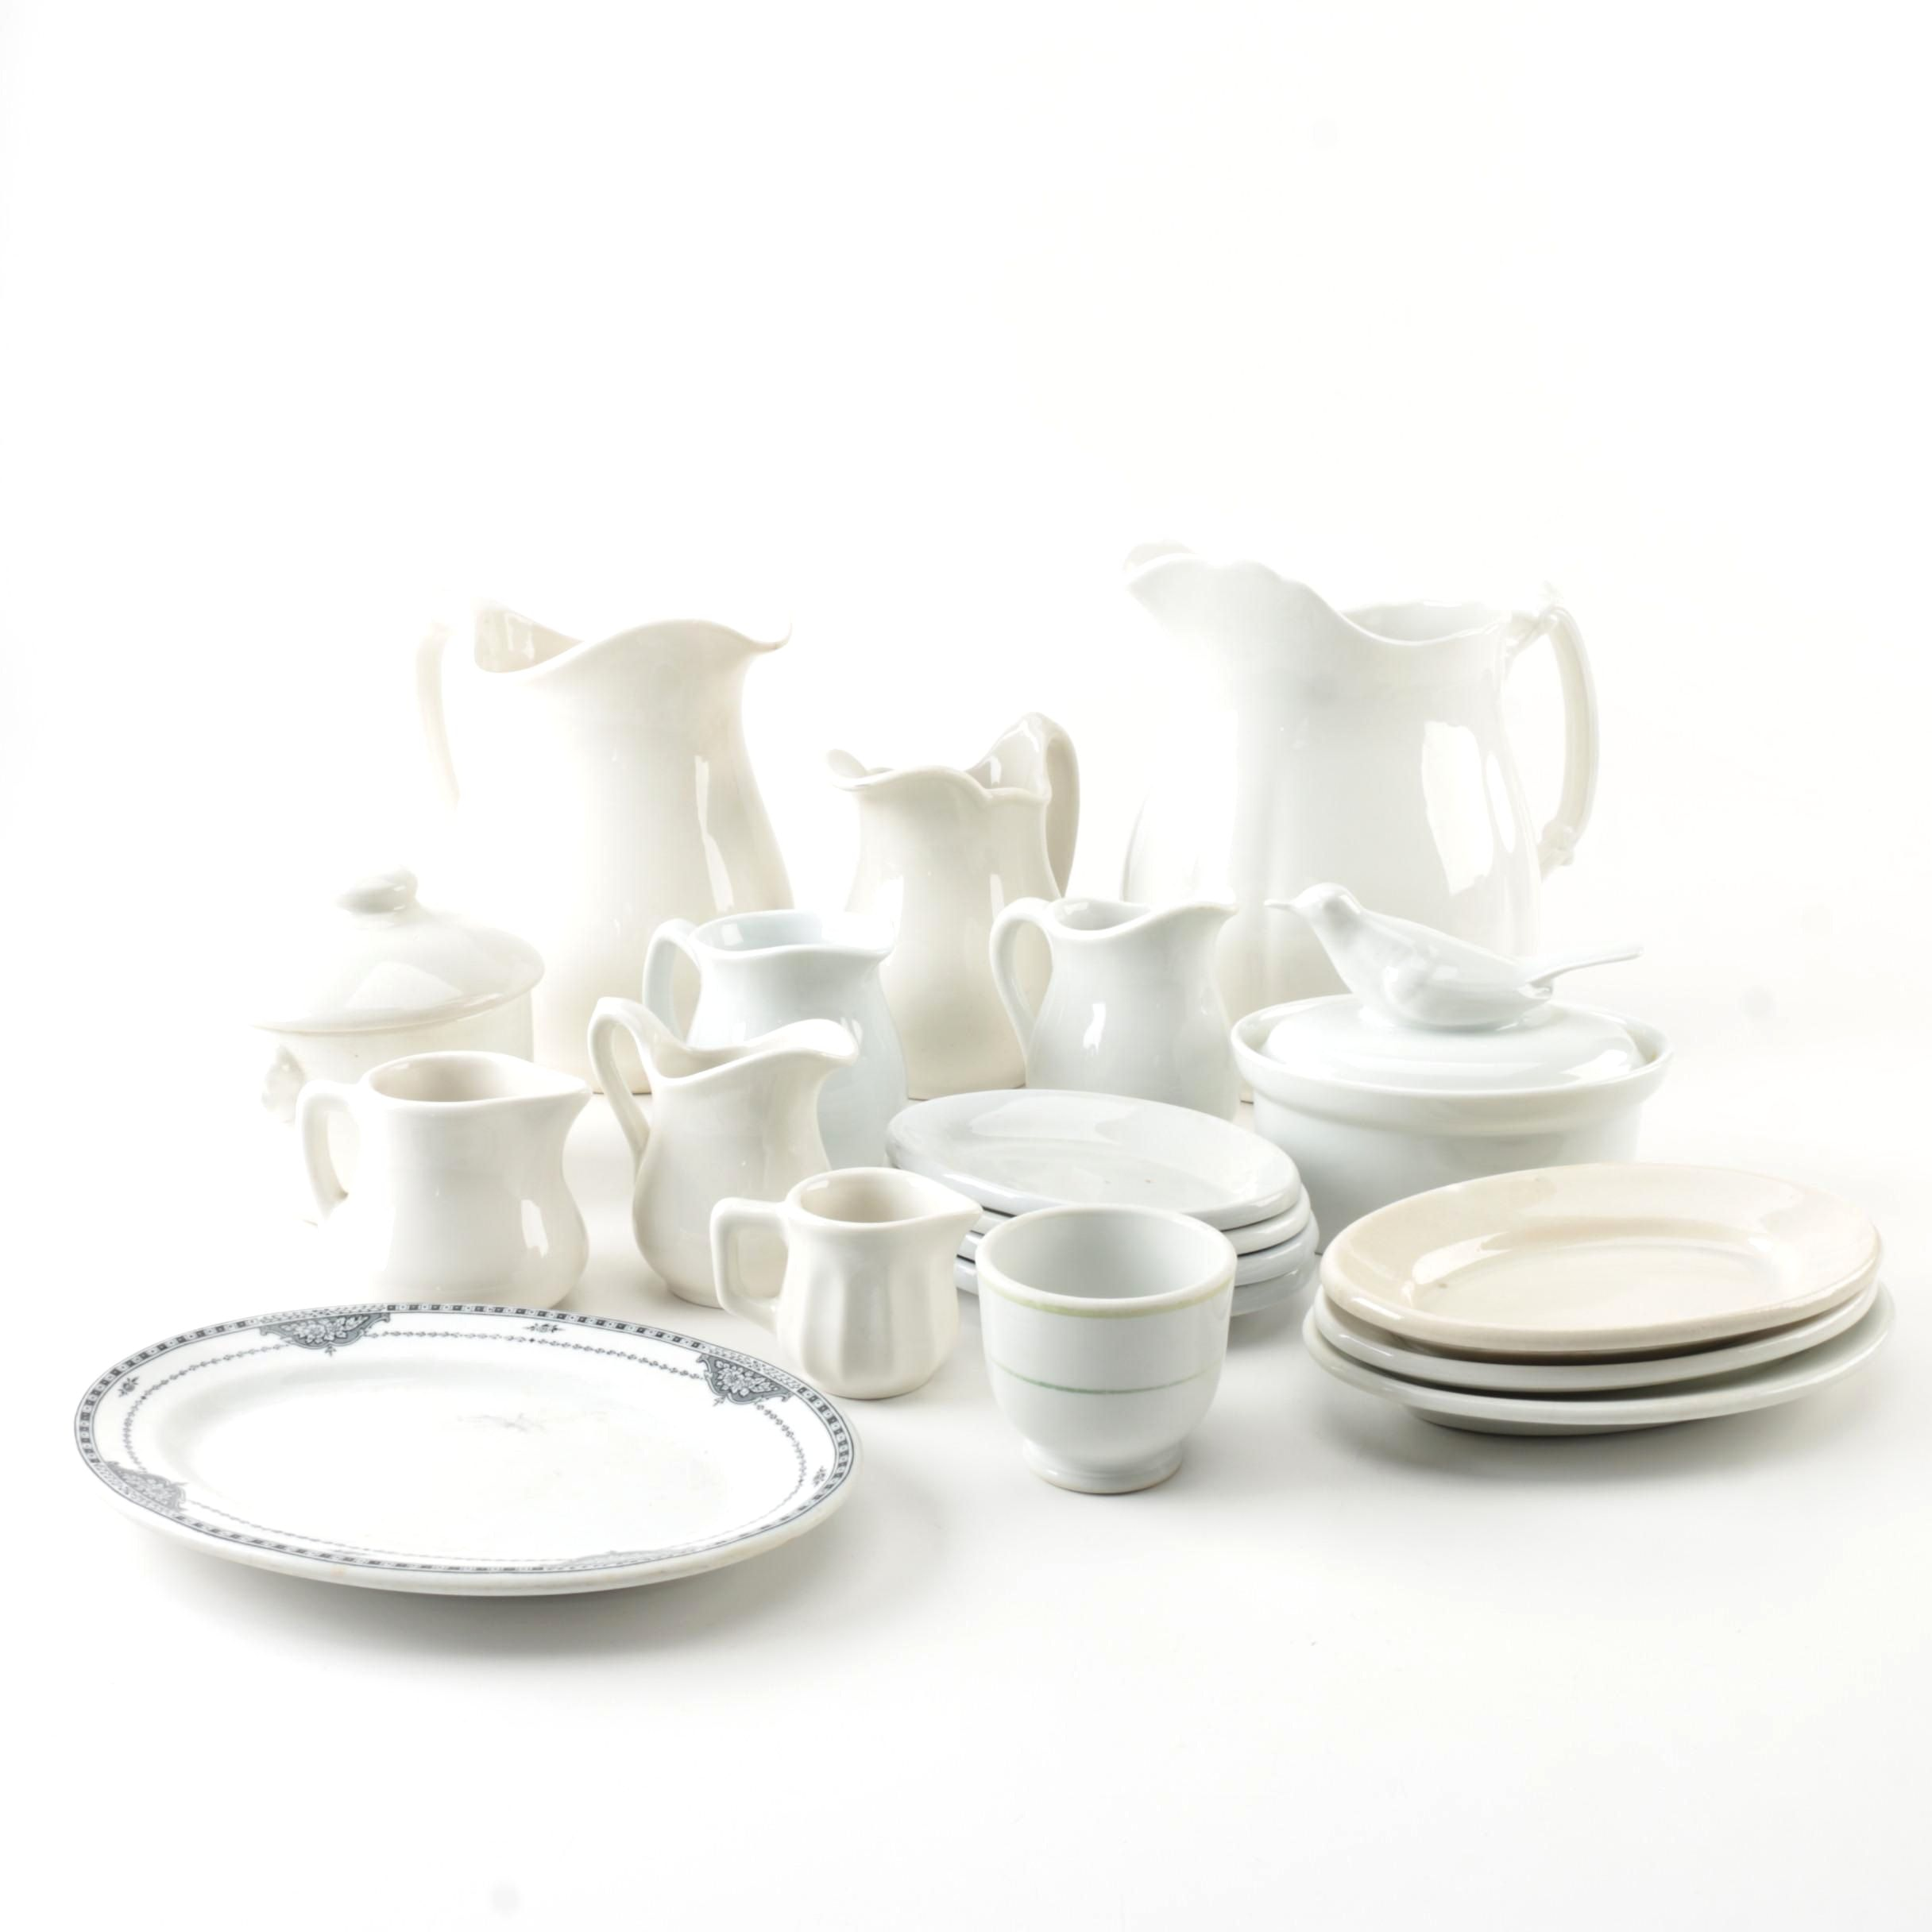 Royal Crownford Ironstone Creamer and Other Serveware